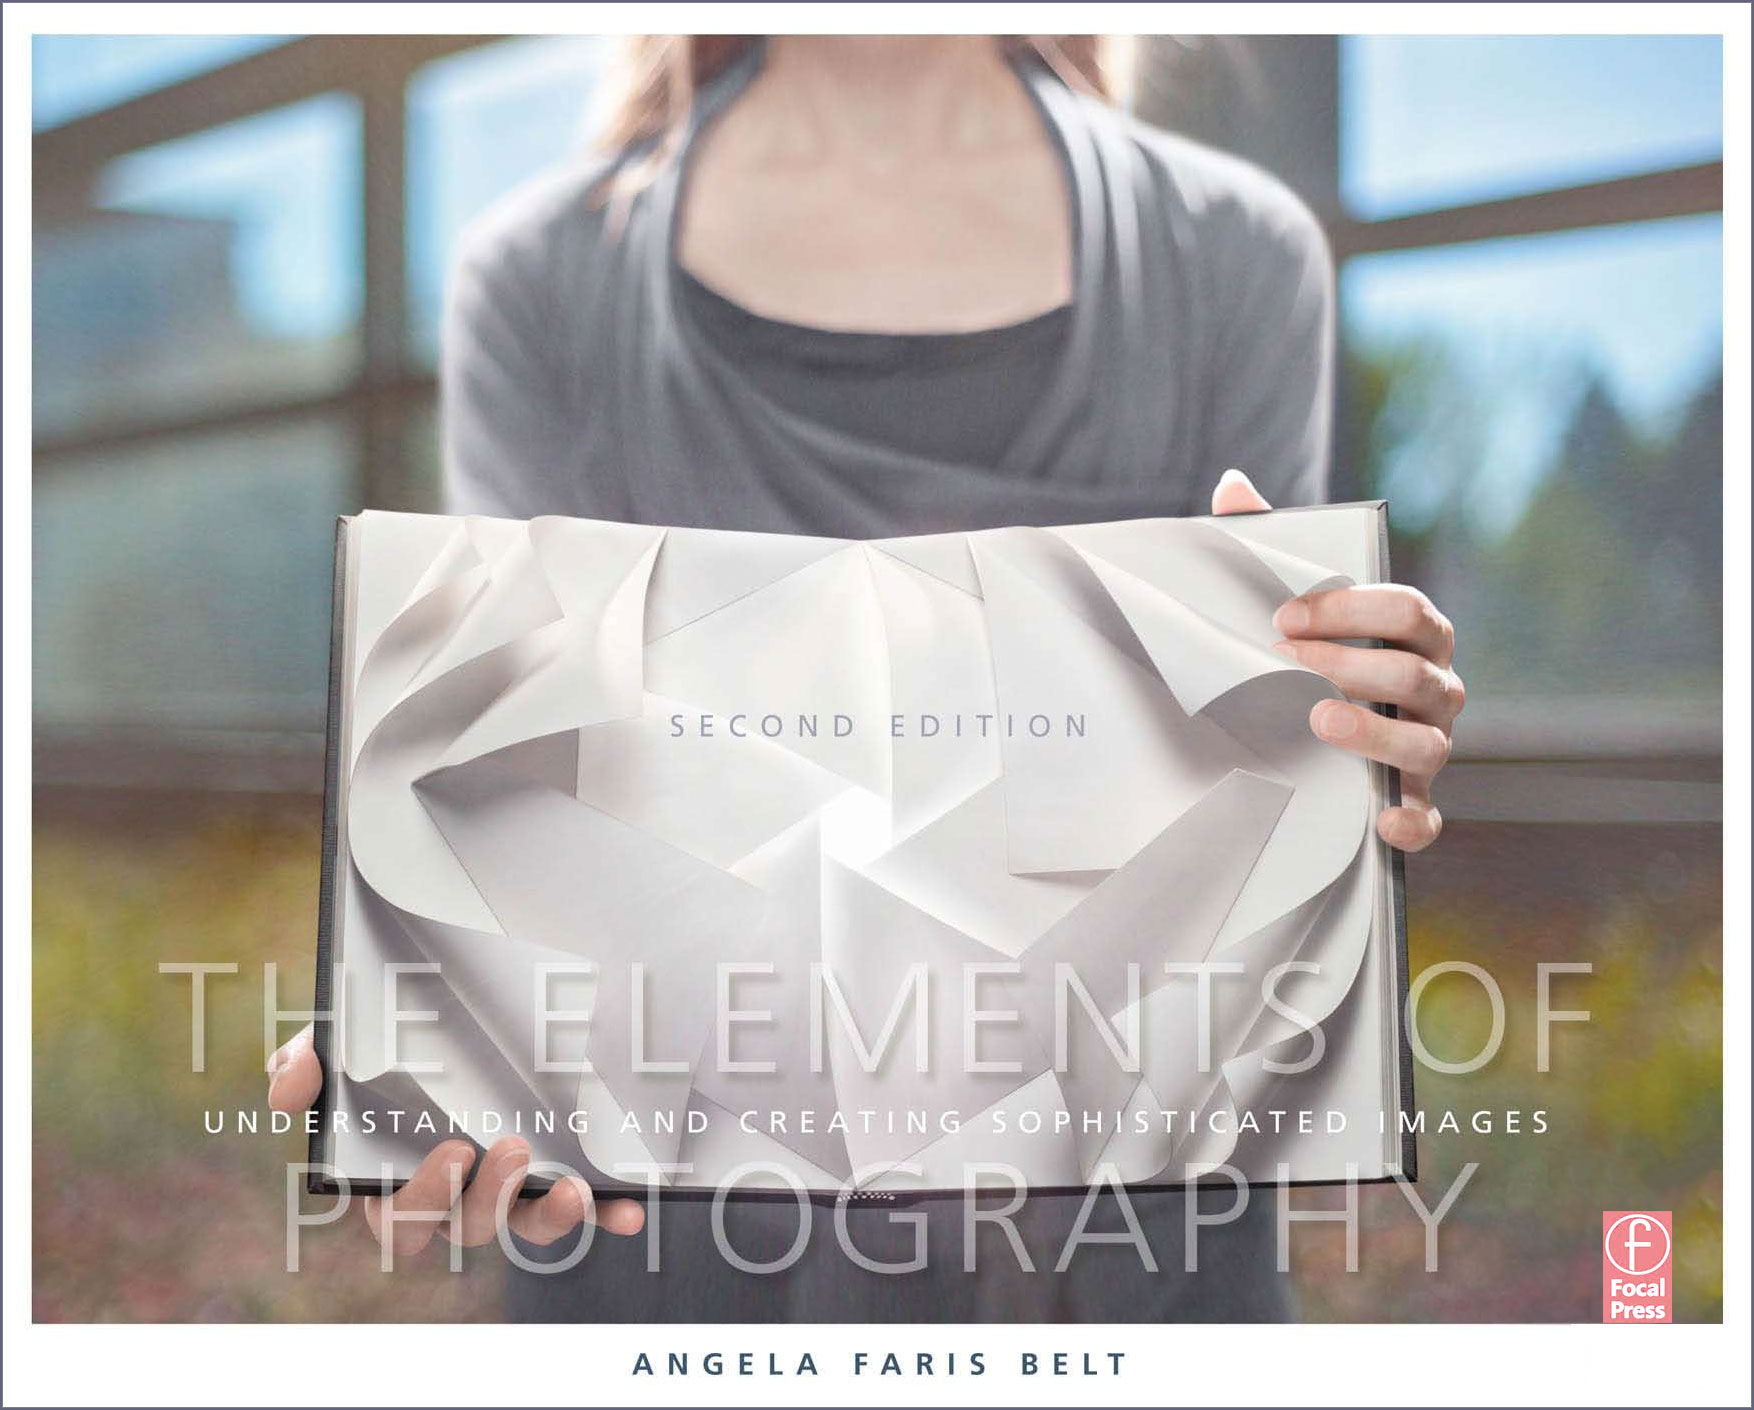 The Elements of Photography, Second Edition